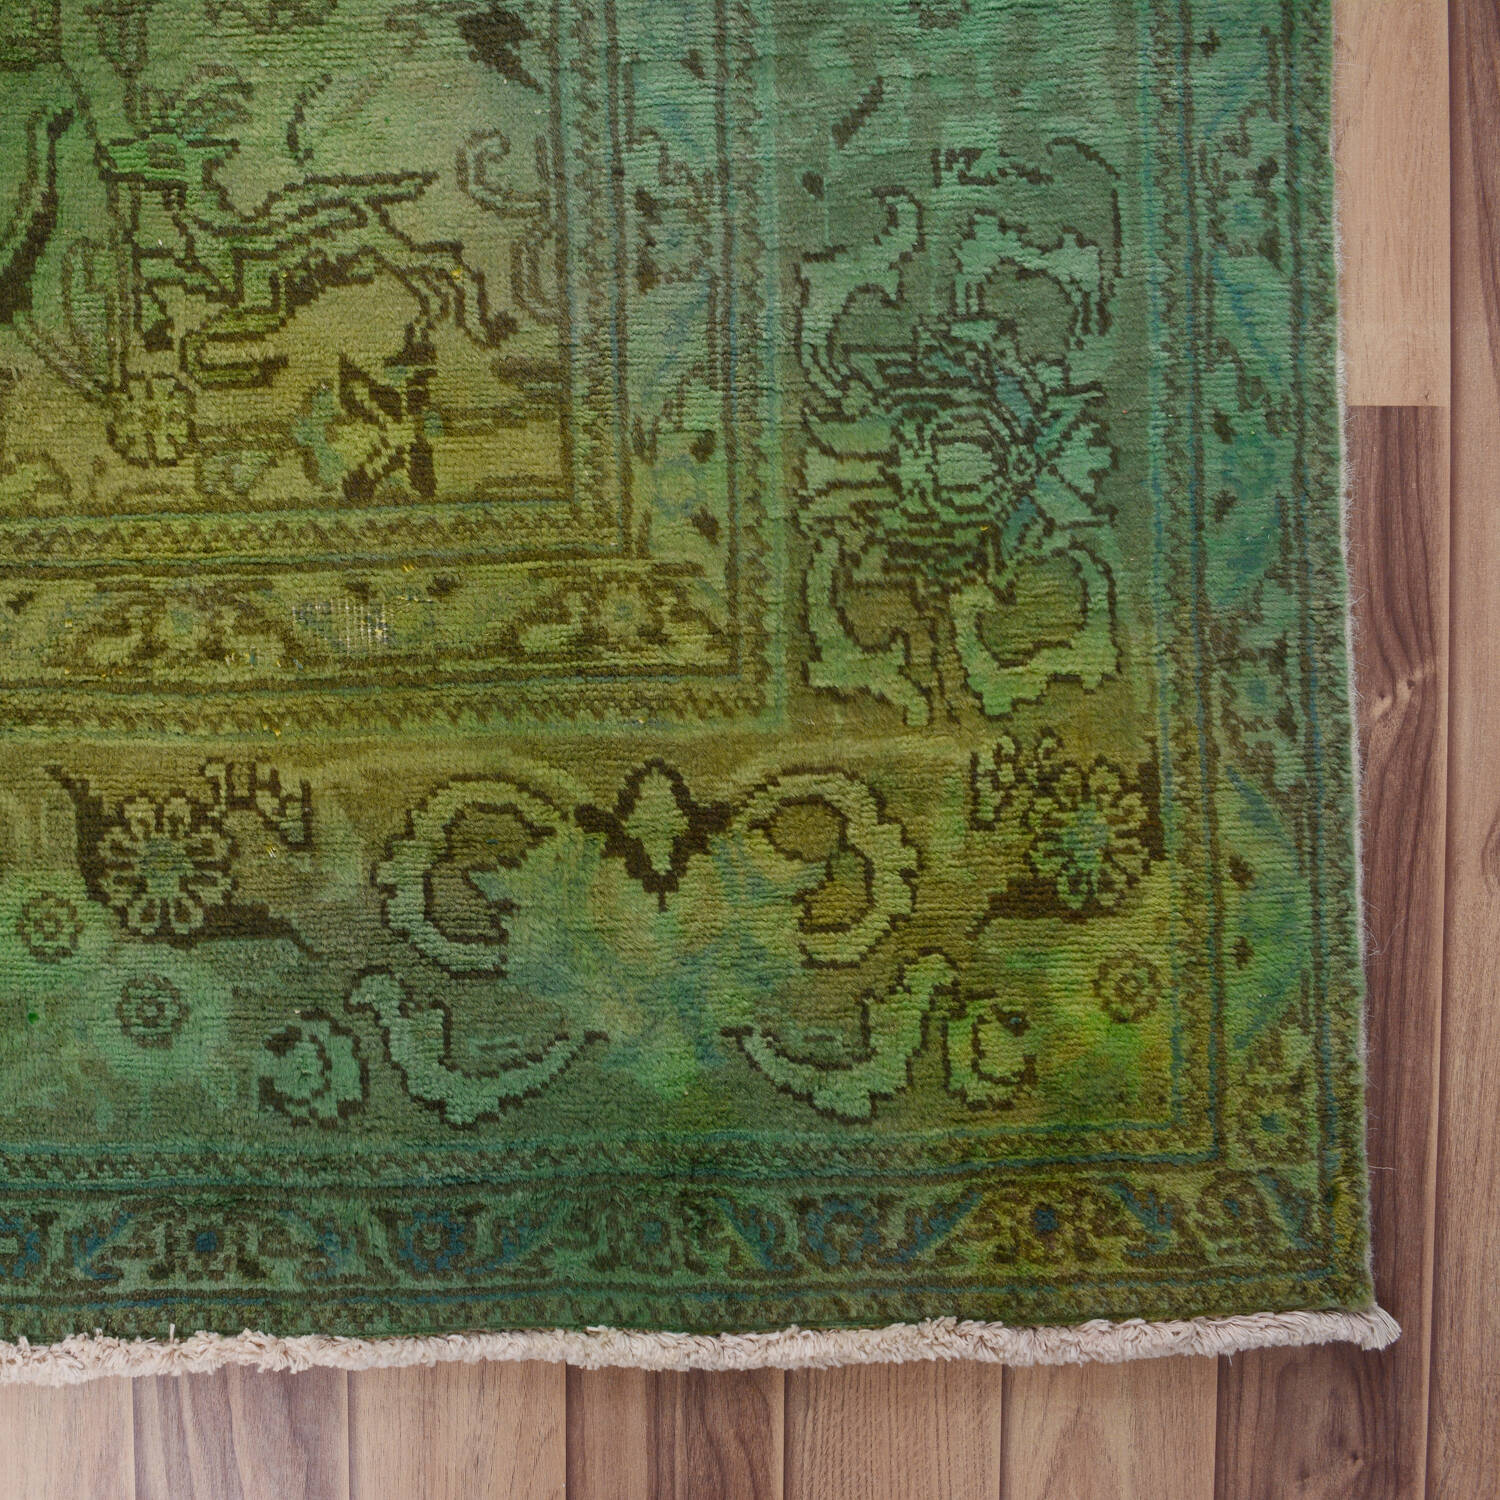 Antique Floral Tabriz Persian Over Dyed Area Rug 8x11 image 5